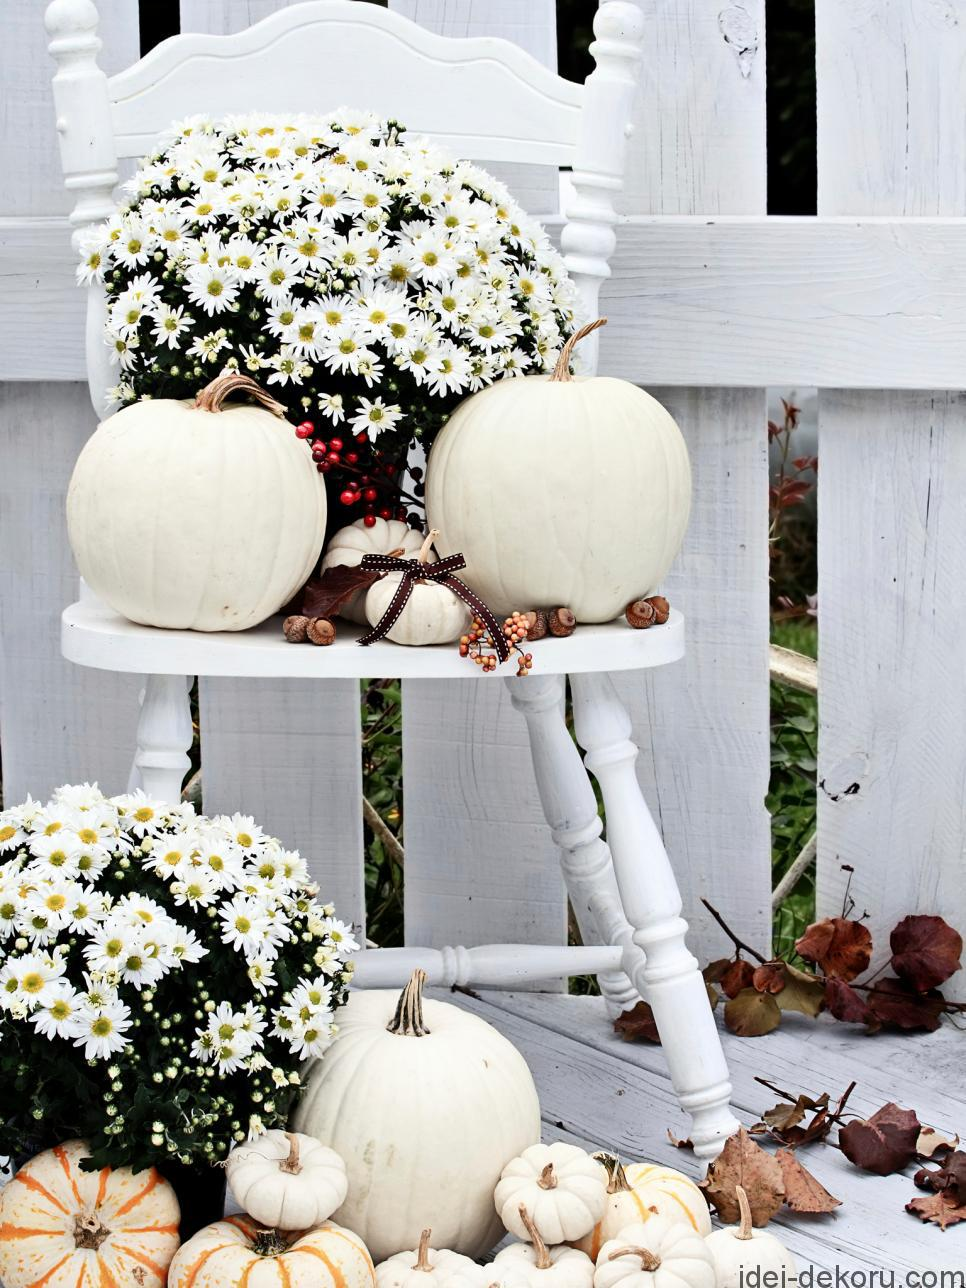 istock_000048755546_white-shabby-chic-chair-with-potted-plants-pumpkins_v-jpg-rend-hgtvcom-966-1288